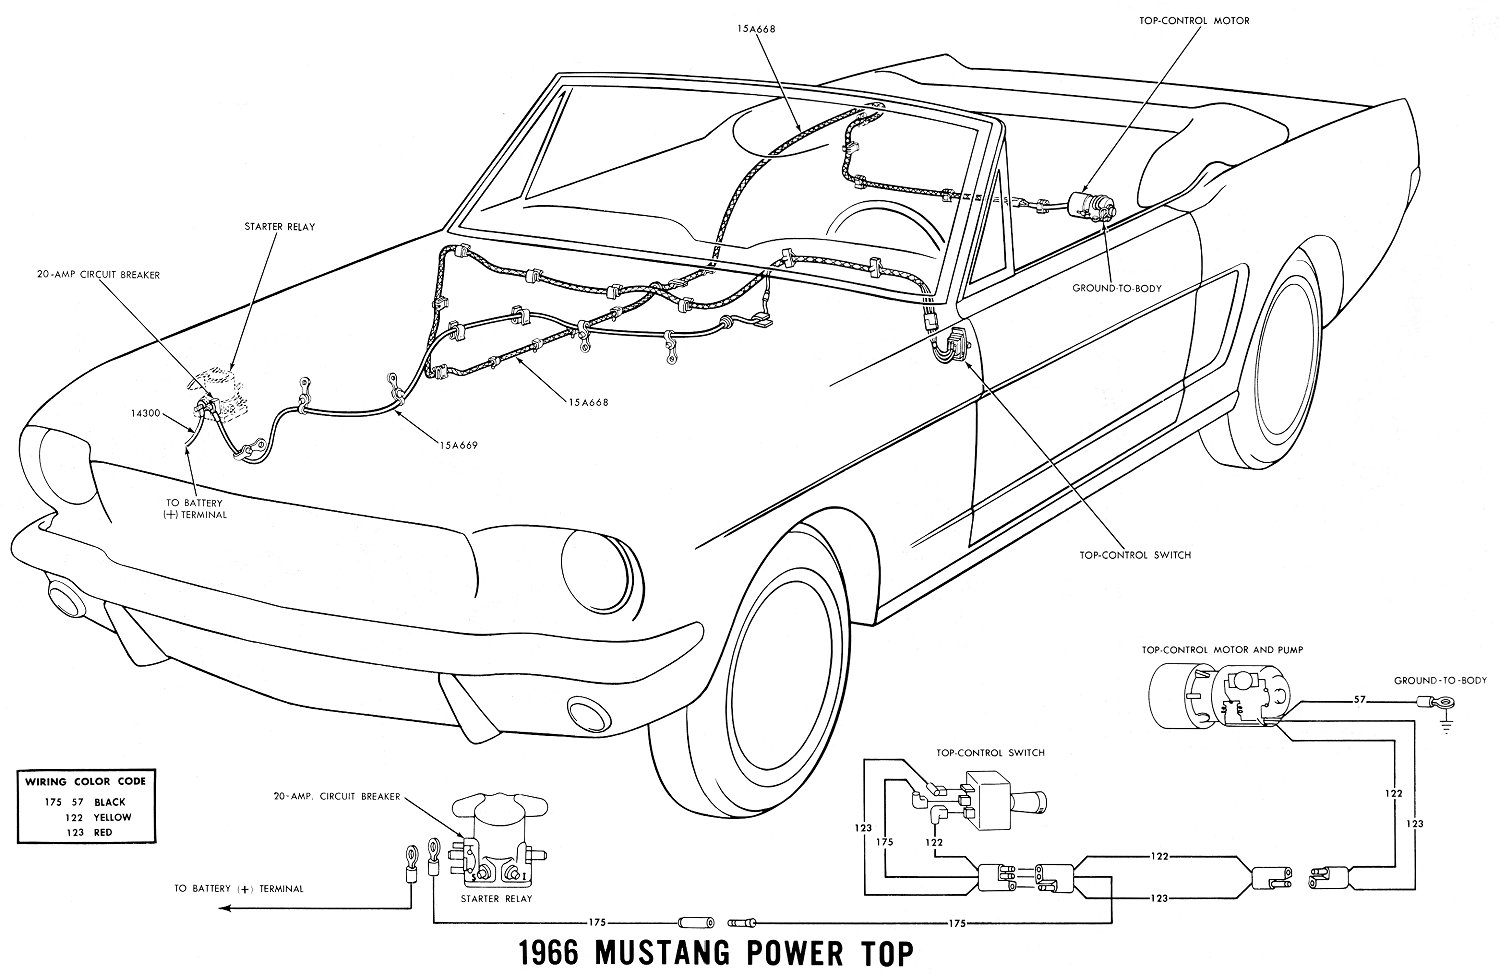 1966 mustang dash light wiring diagram 24 volt relay diagrams average joe restoration